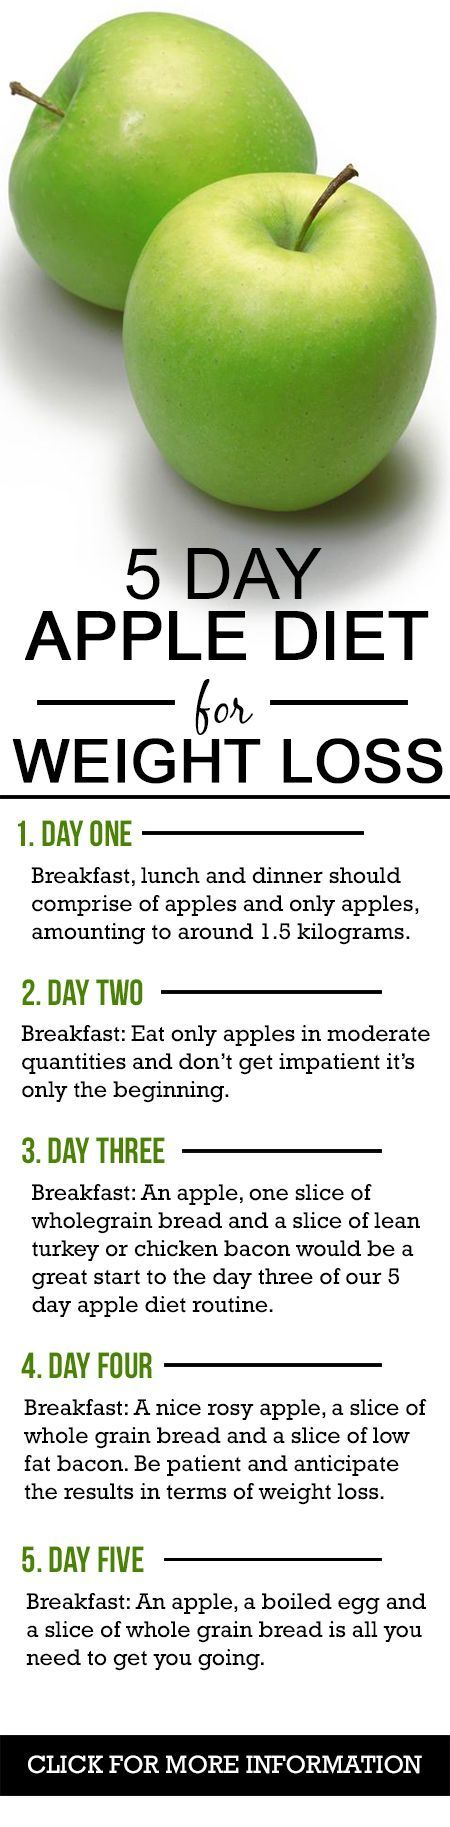 3 day apple diet before and after